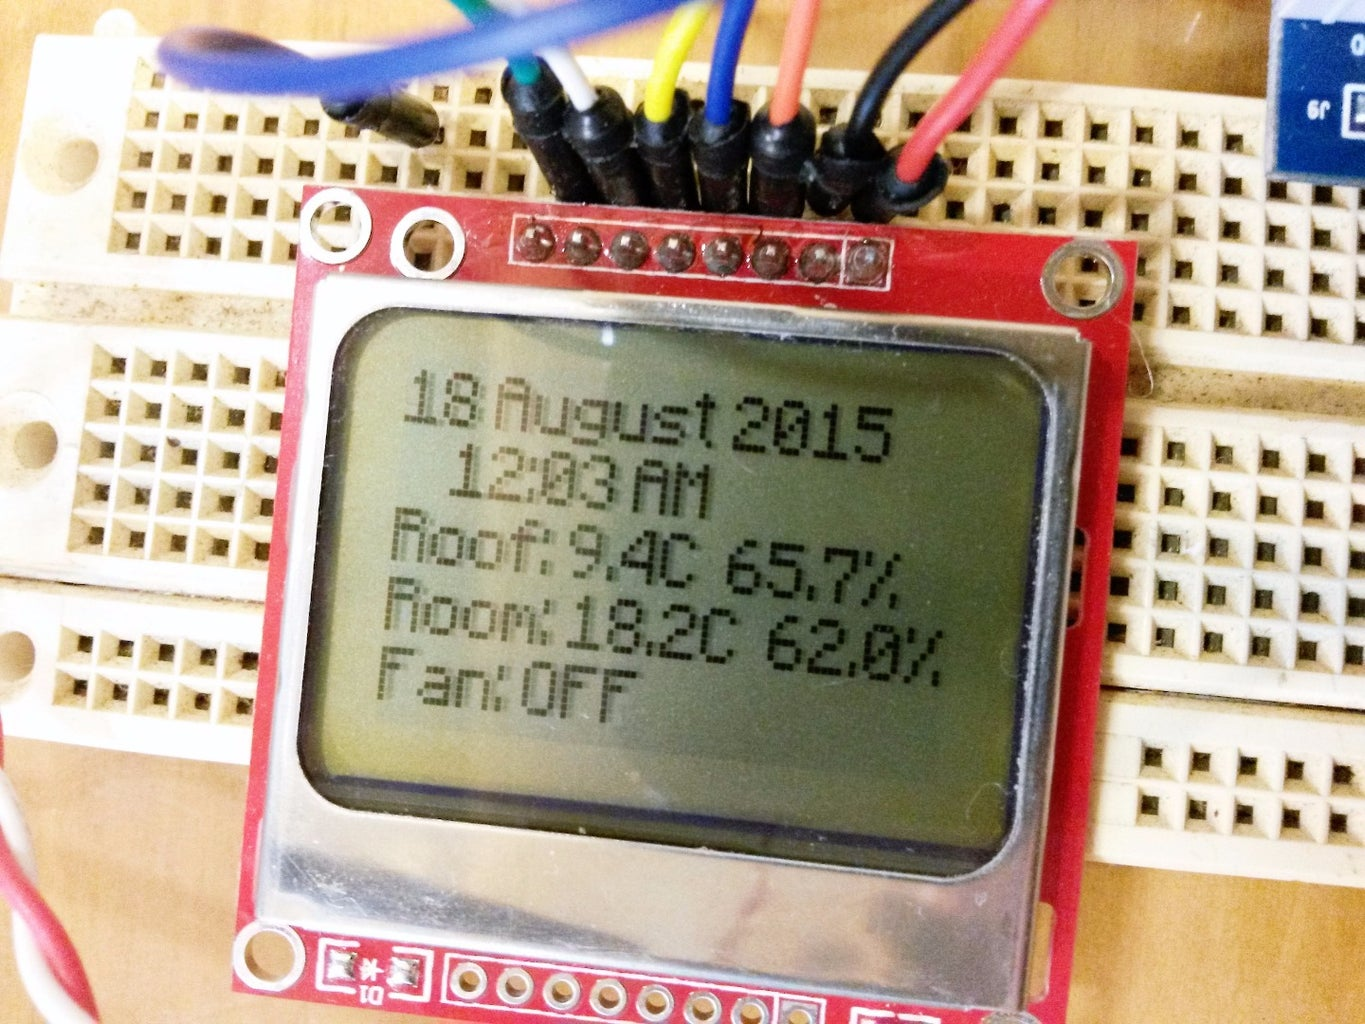 LCD Screen (Nokia 5110 With PCD8544 Controller)